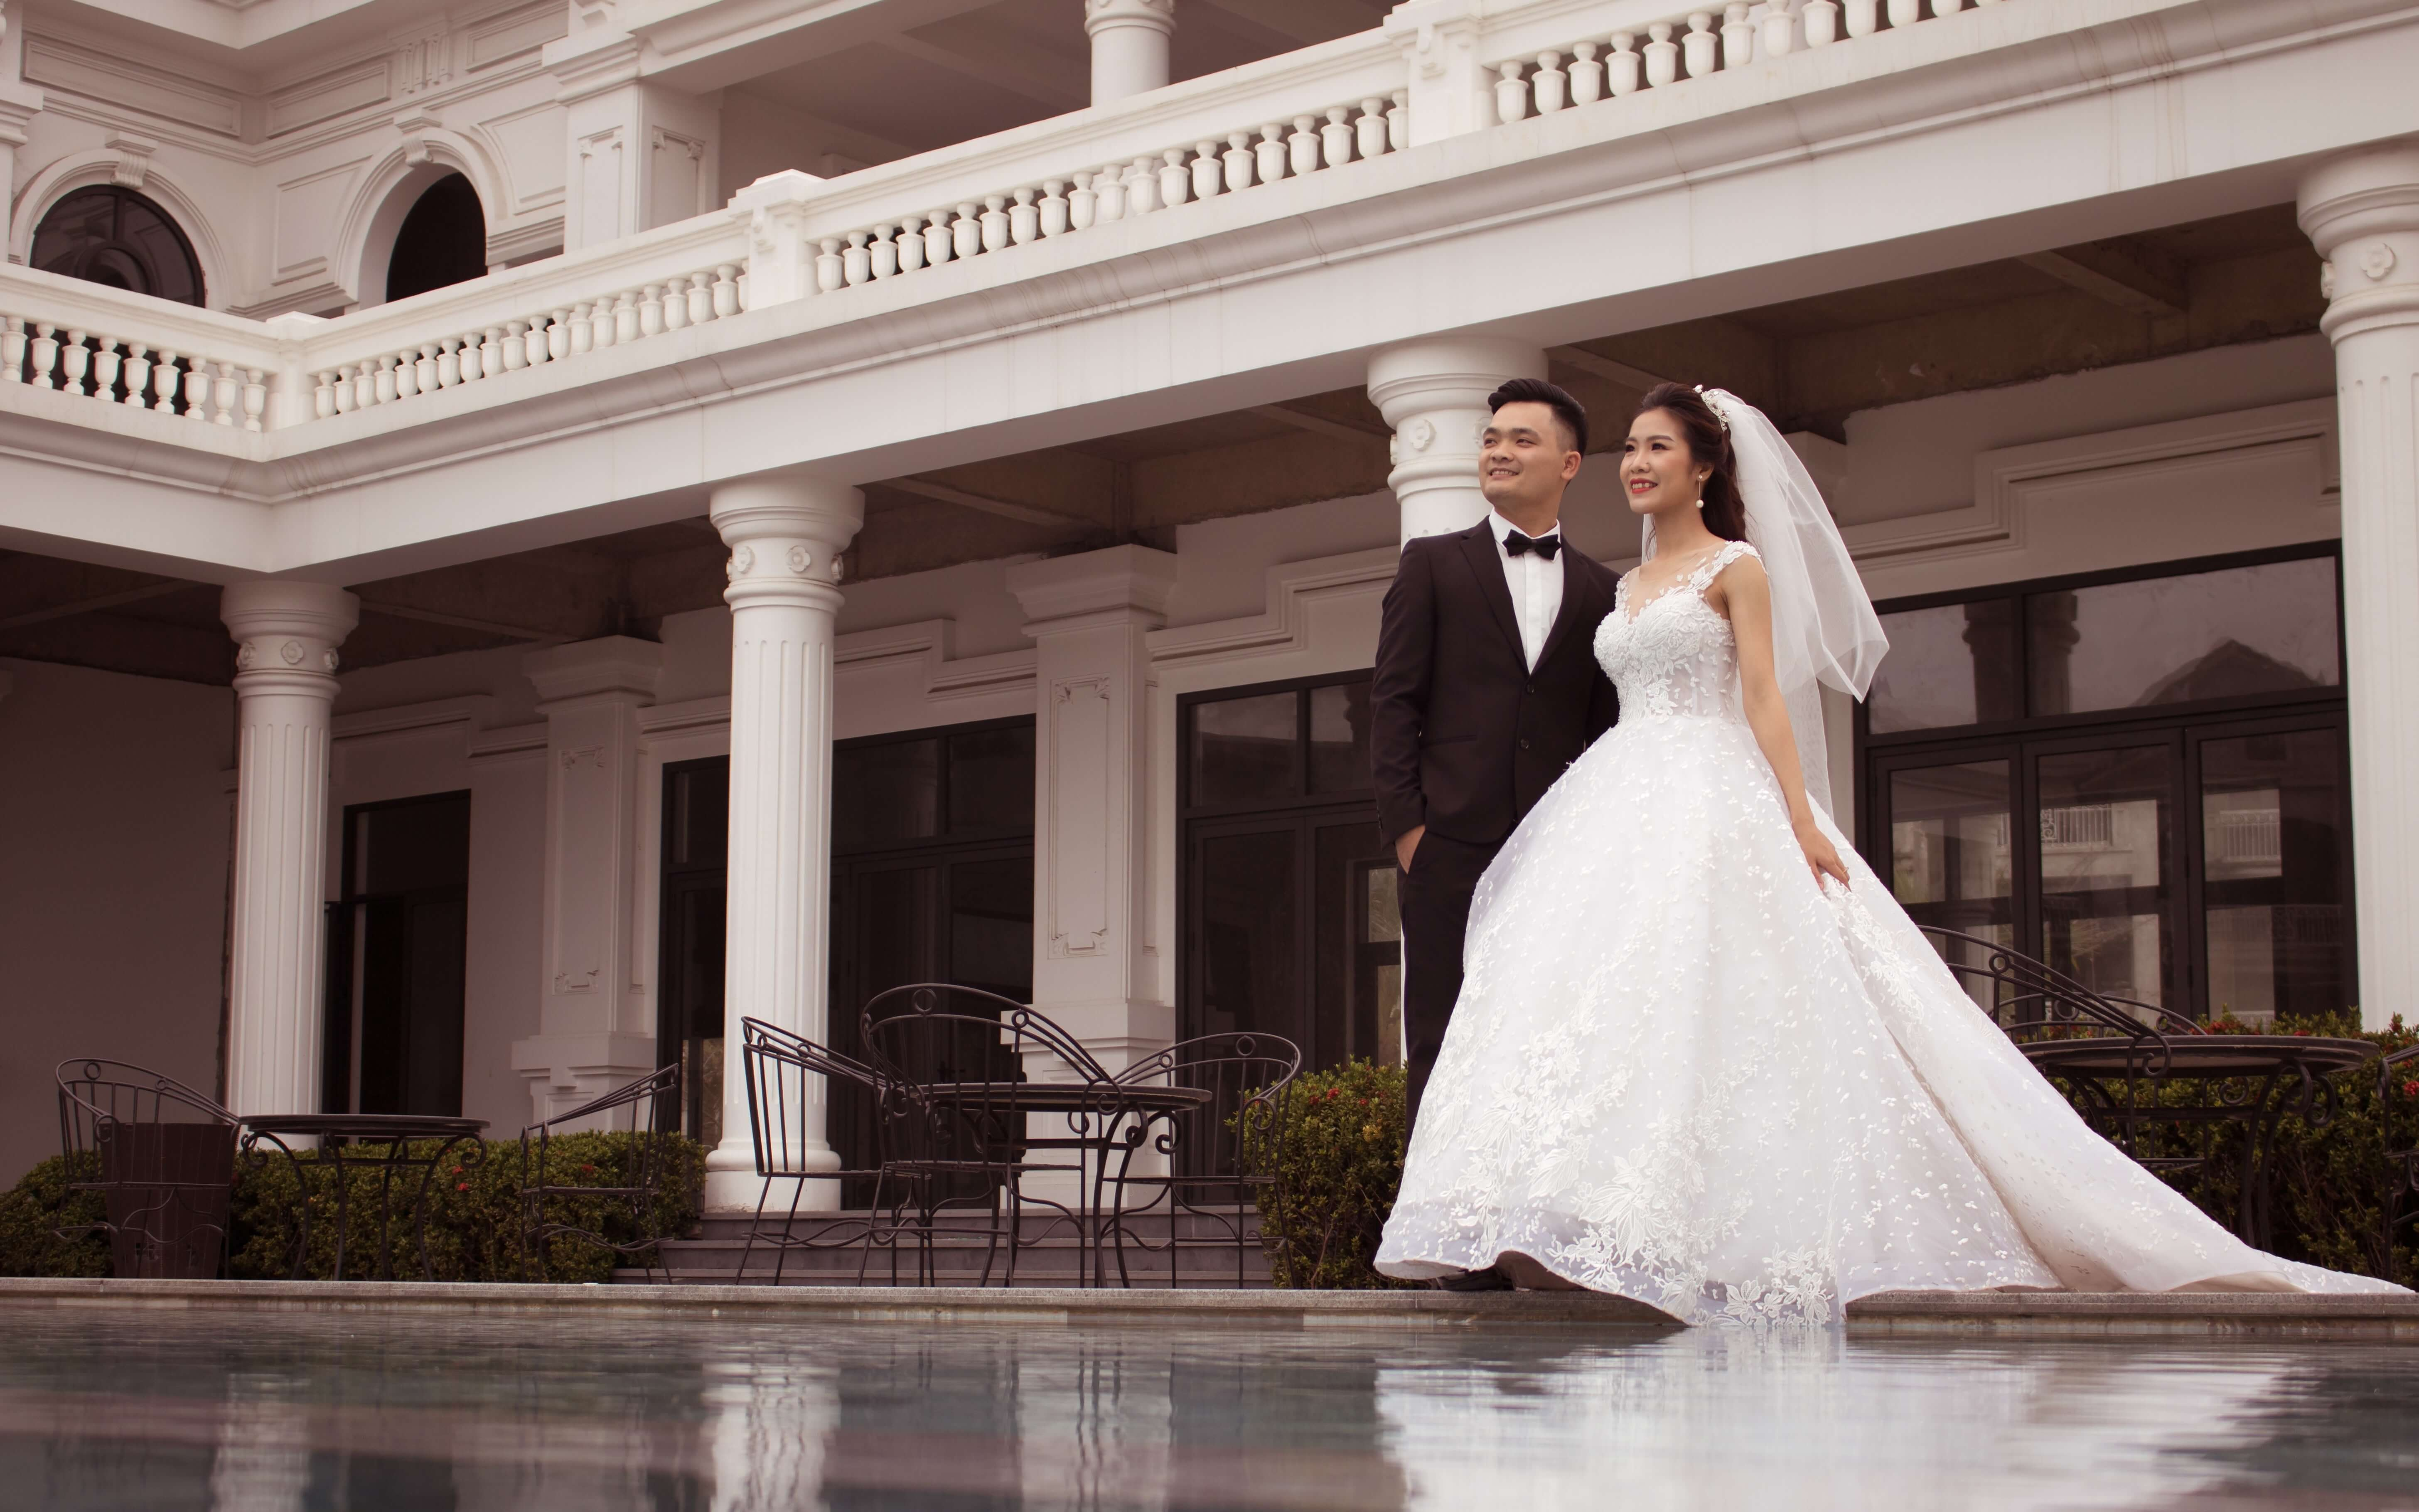 Bride and groom standing in a courtyard near a pool